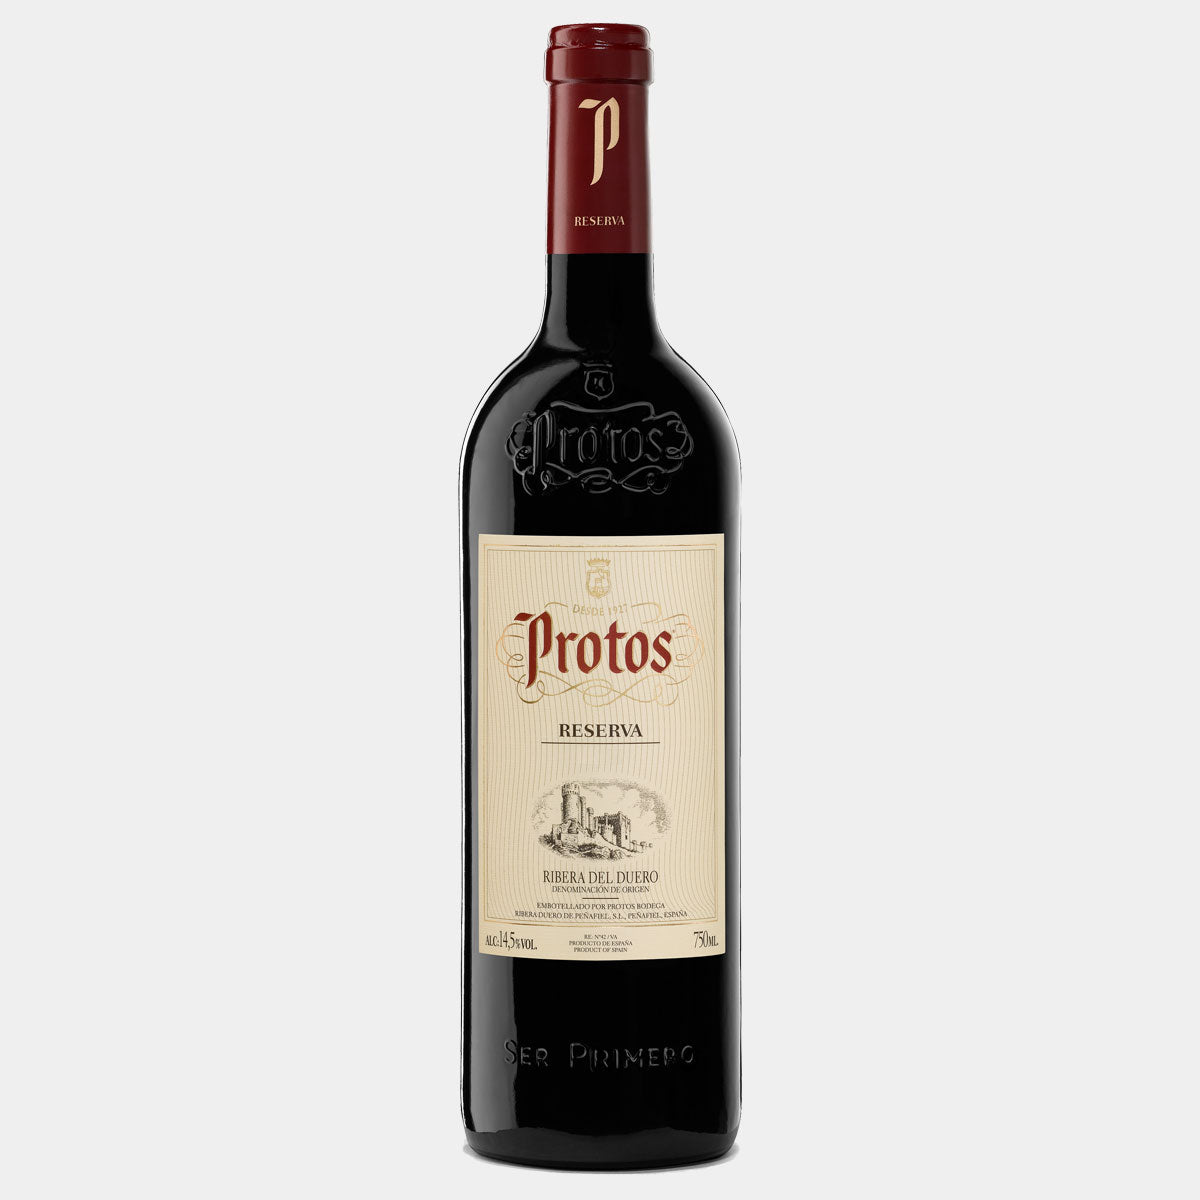 Protos Reserva - Wines and Copas Barcelona